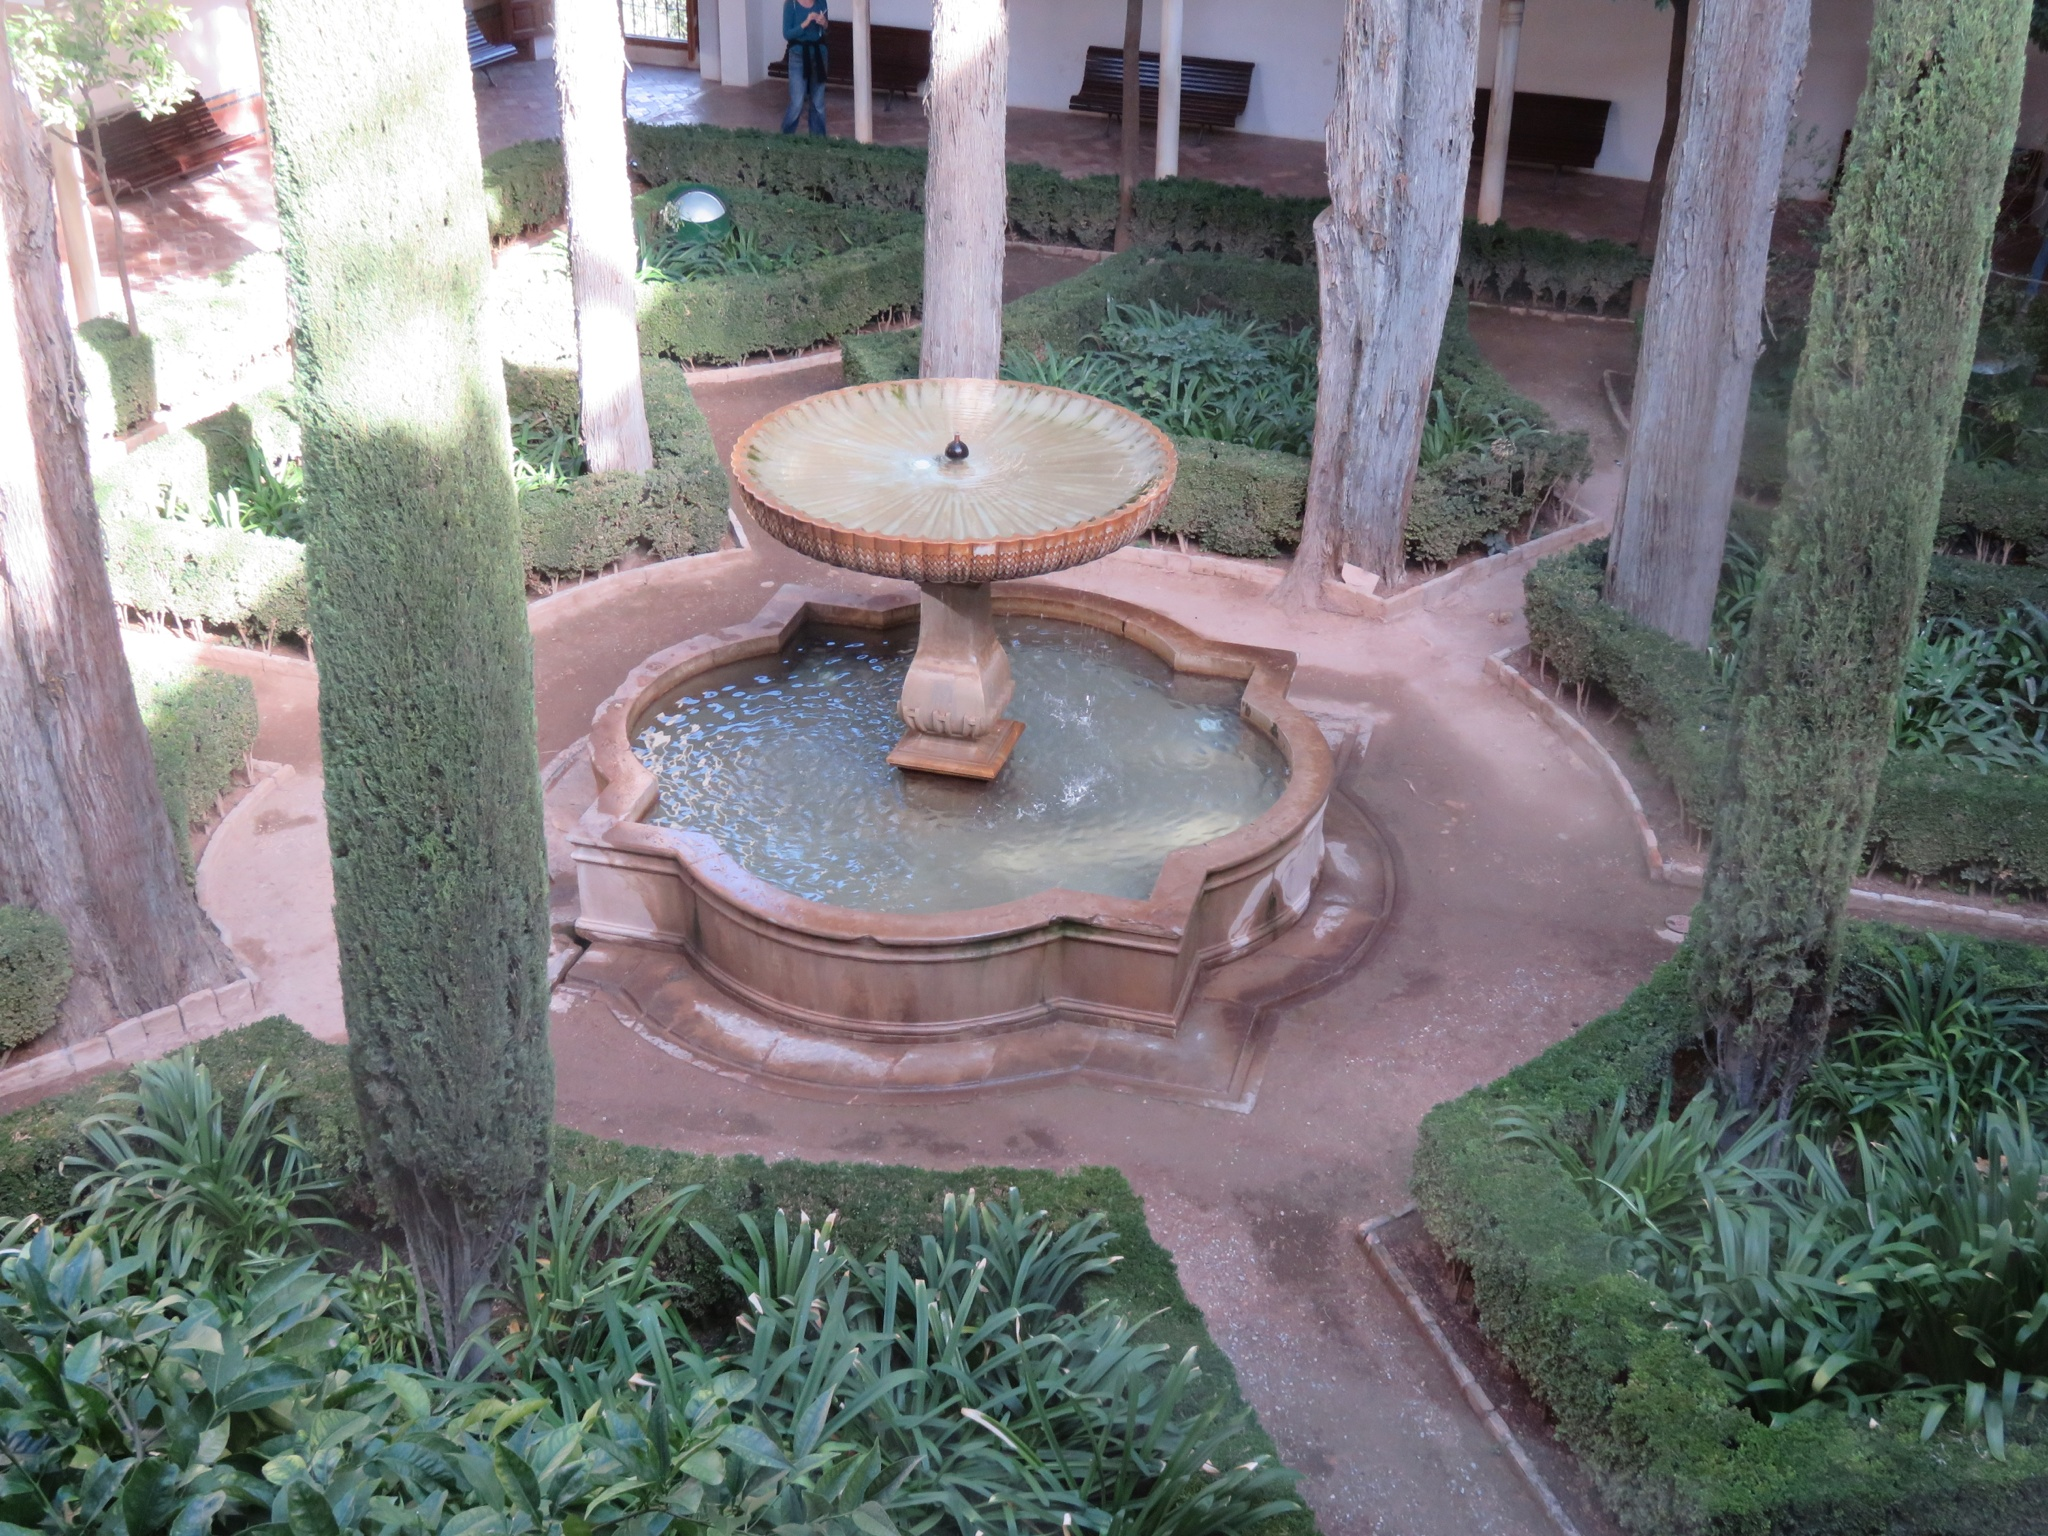 Fountains provided humidity and coolness during hot summers